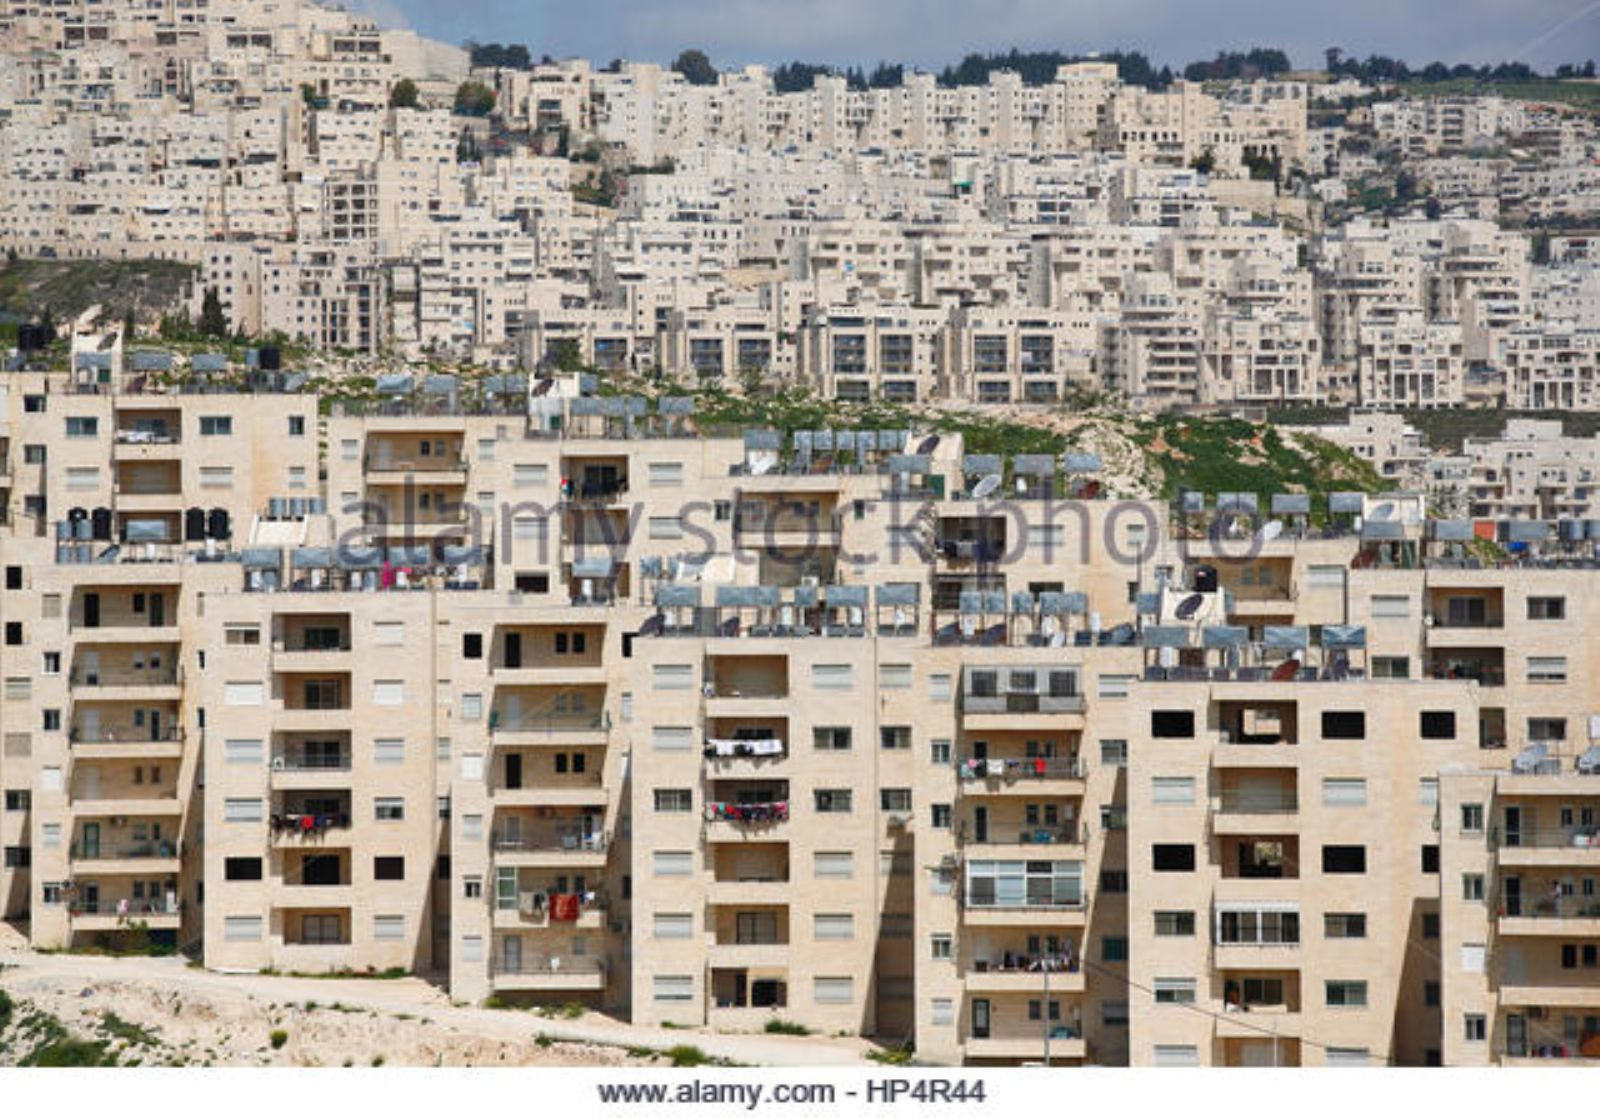 Israel to build three new settlements in Bethlehem